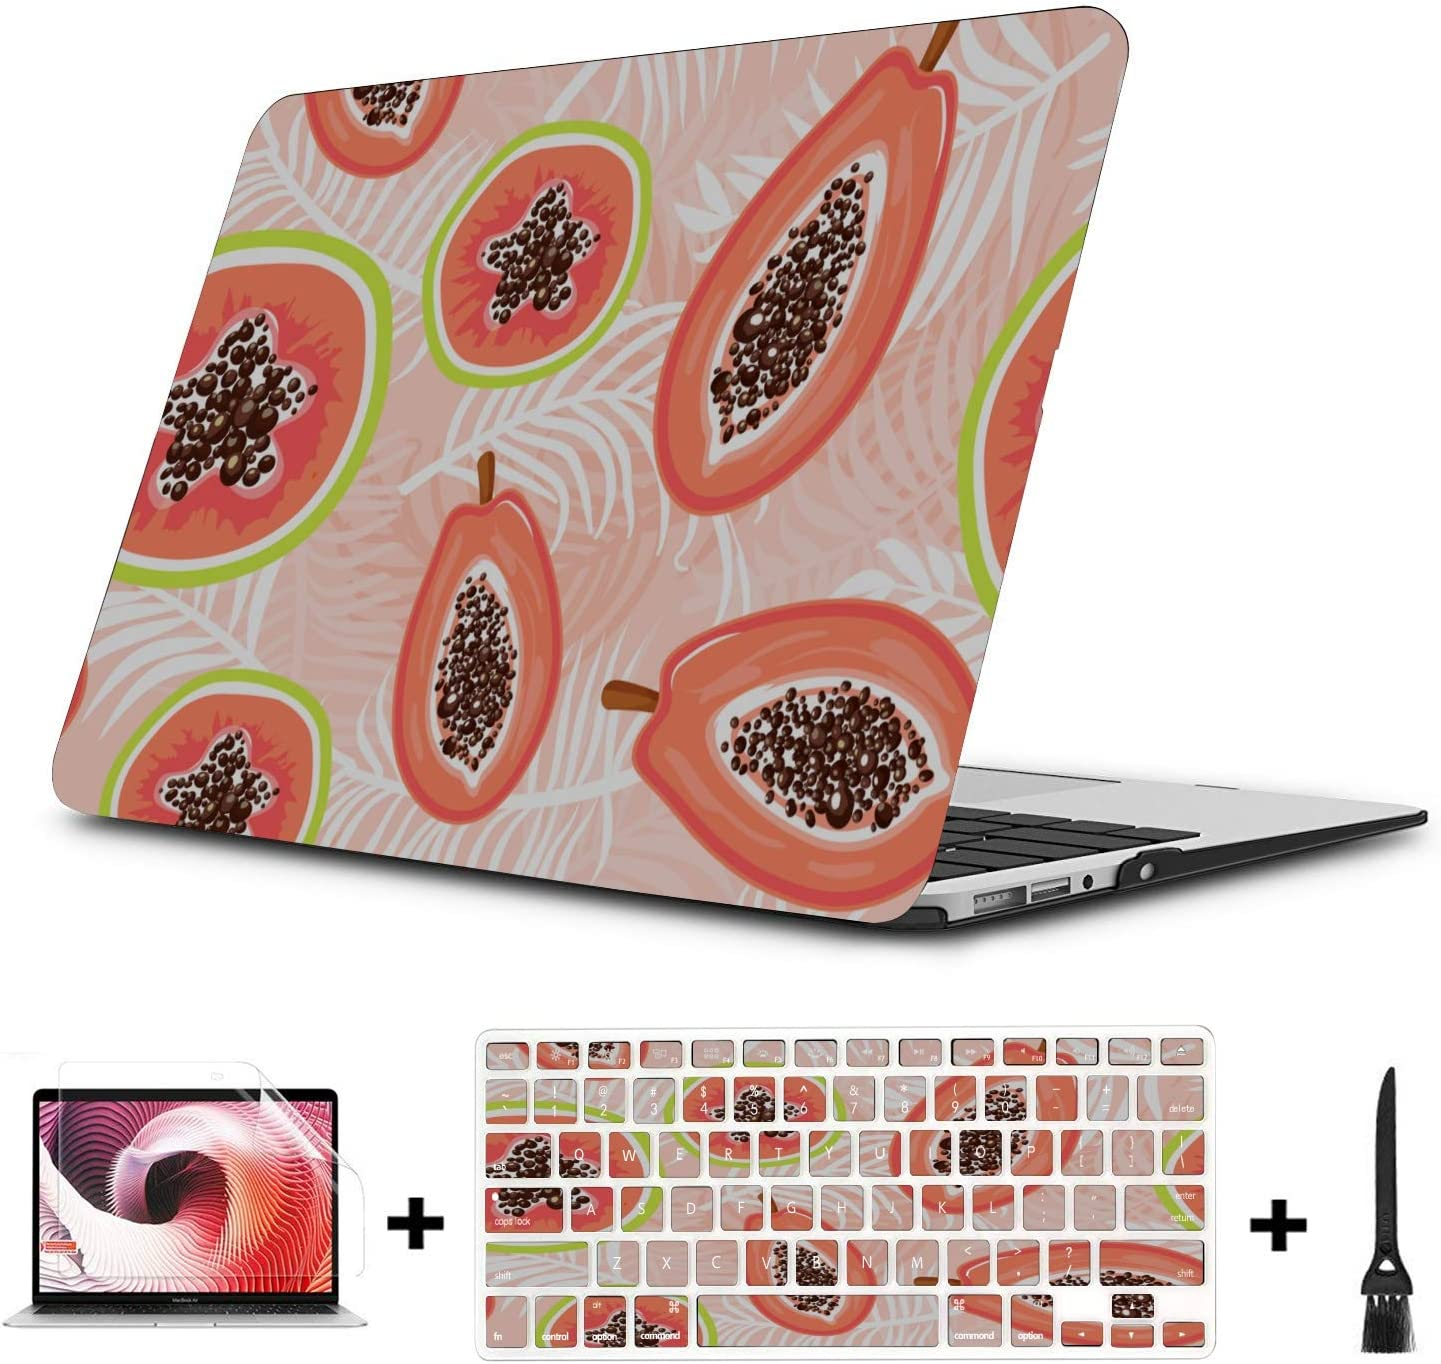 Hard Laptop Cases Summmer Cute Fashion Fruit Papaya Plastic Hard Shell Compatible Mac Air 11 Pro 13 15 MacBook Computer Case Protection for MacBook 2016-2019 Version